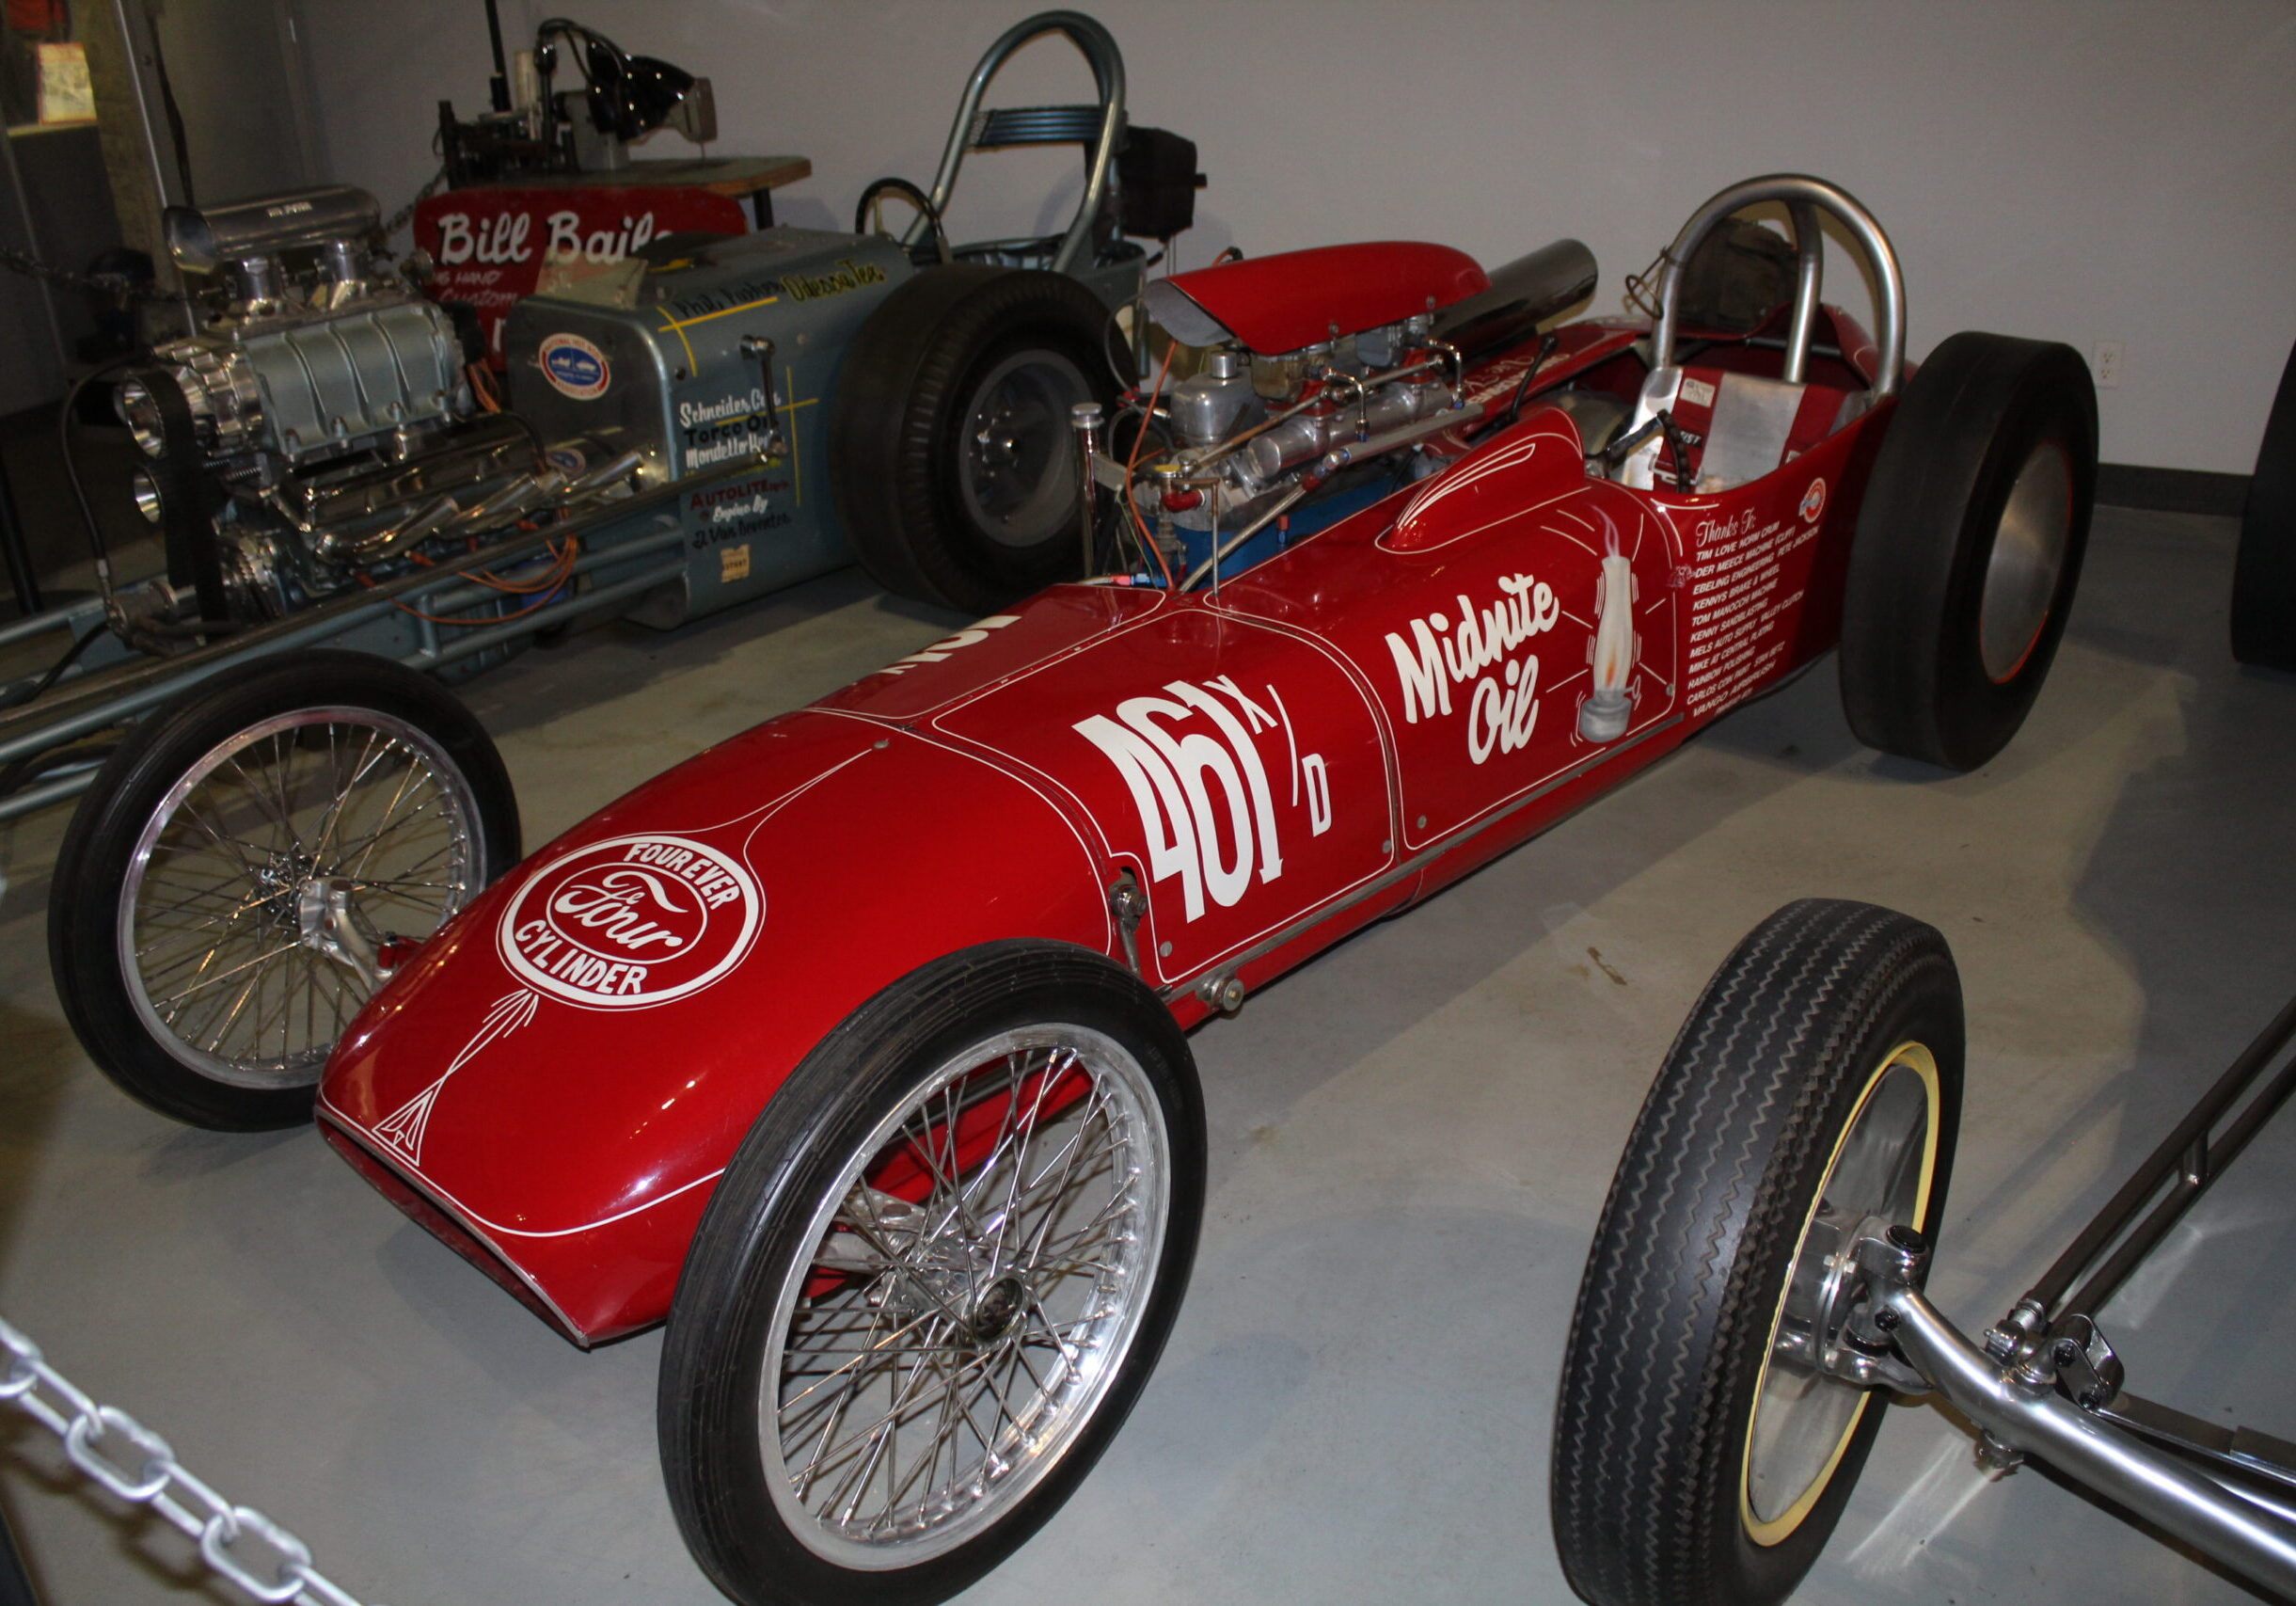 Midnite Oil on Display at the NHRA museum